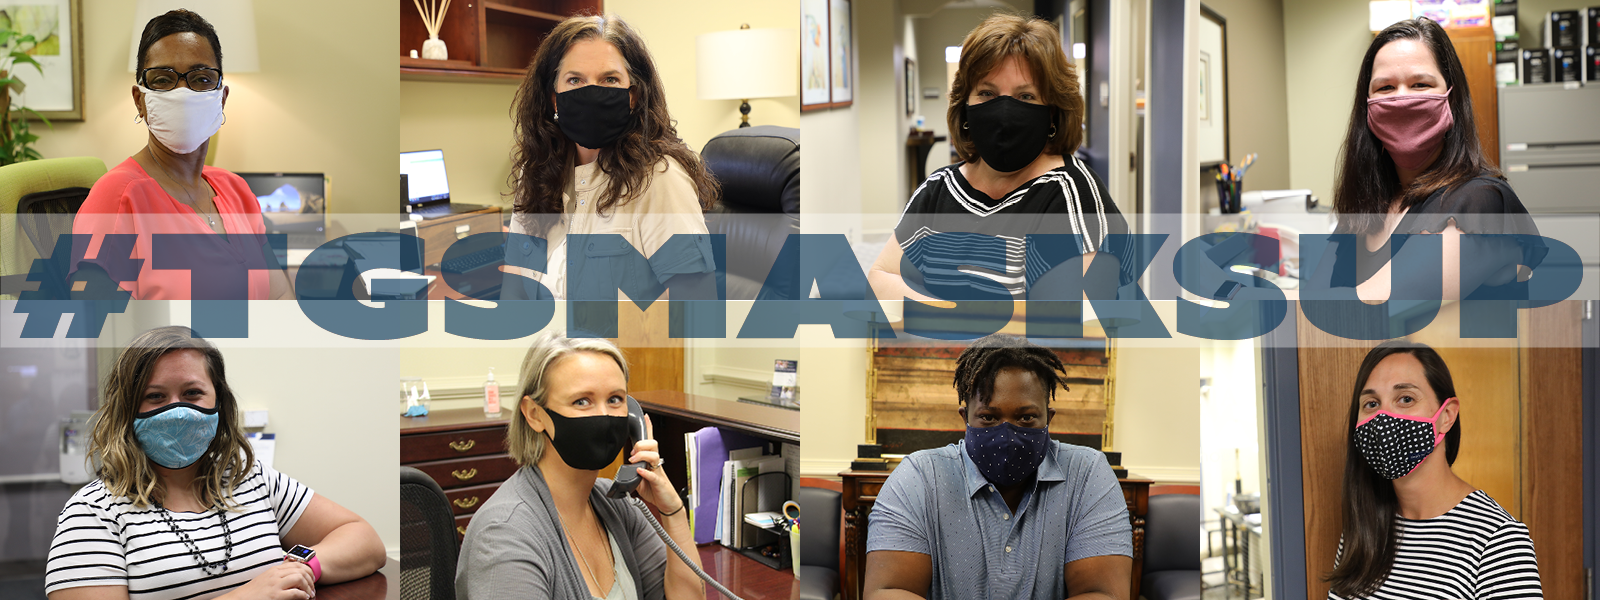 #TGSMaskUp: A collage photo with all graduate school staff wearing face mask